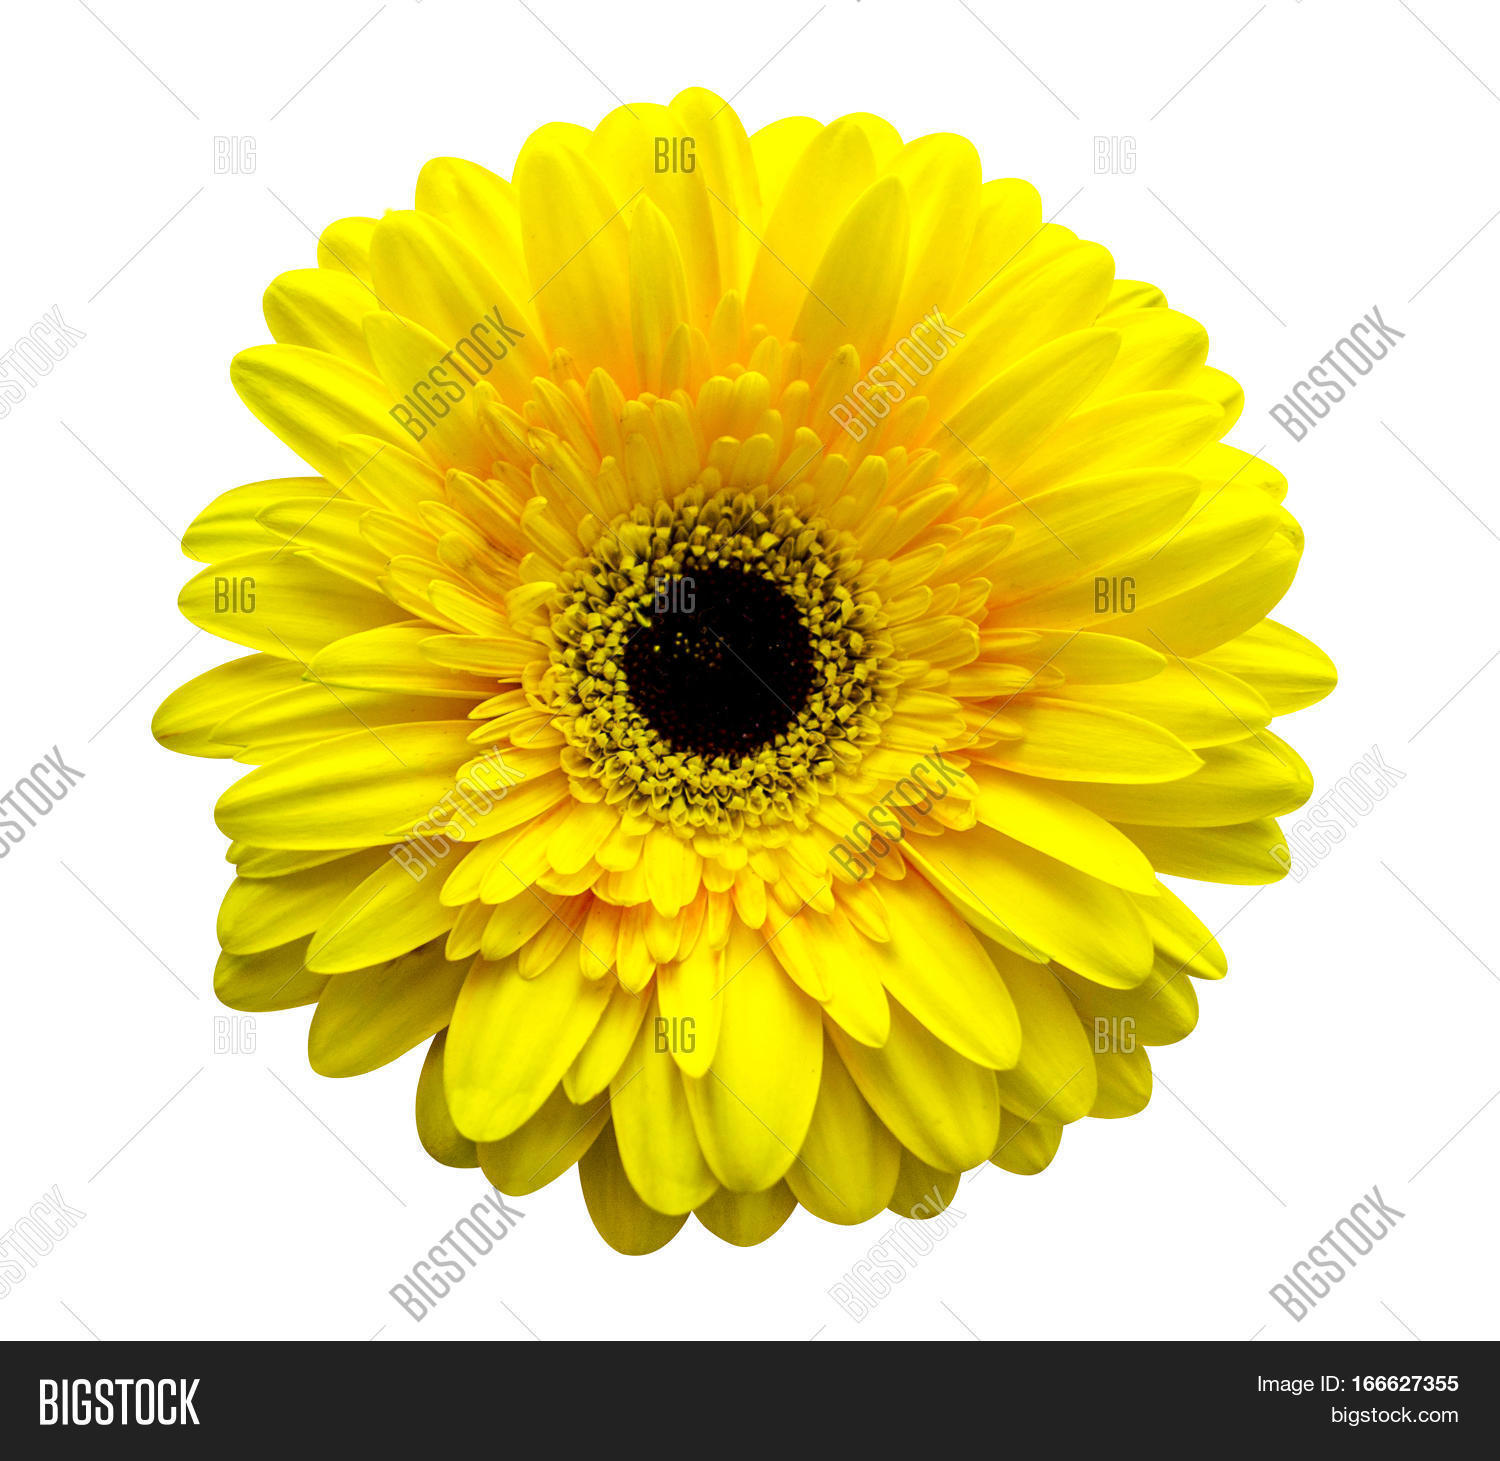 Gerbera Flowers. Yellow Gerbera. Image & Photo | Bigstock